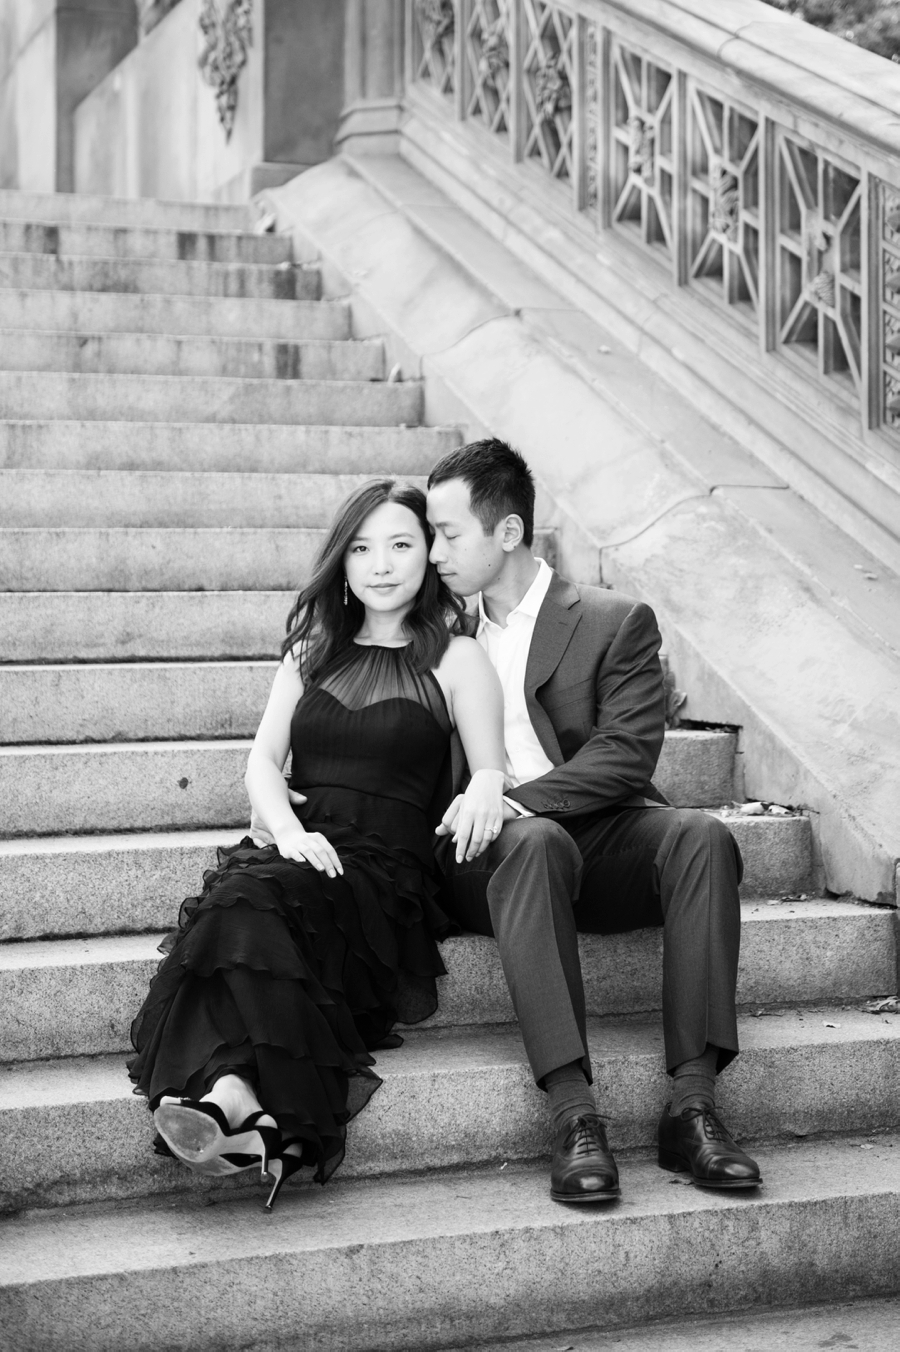 Central_Park_Lincoln_Center_NYC_Engagement_Session_AG_006.jpg